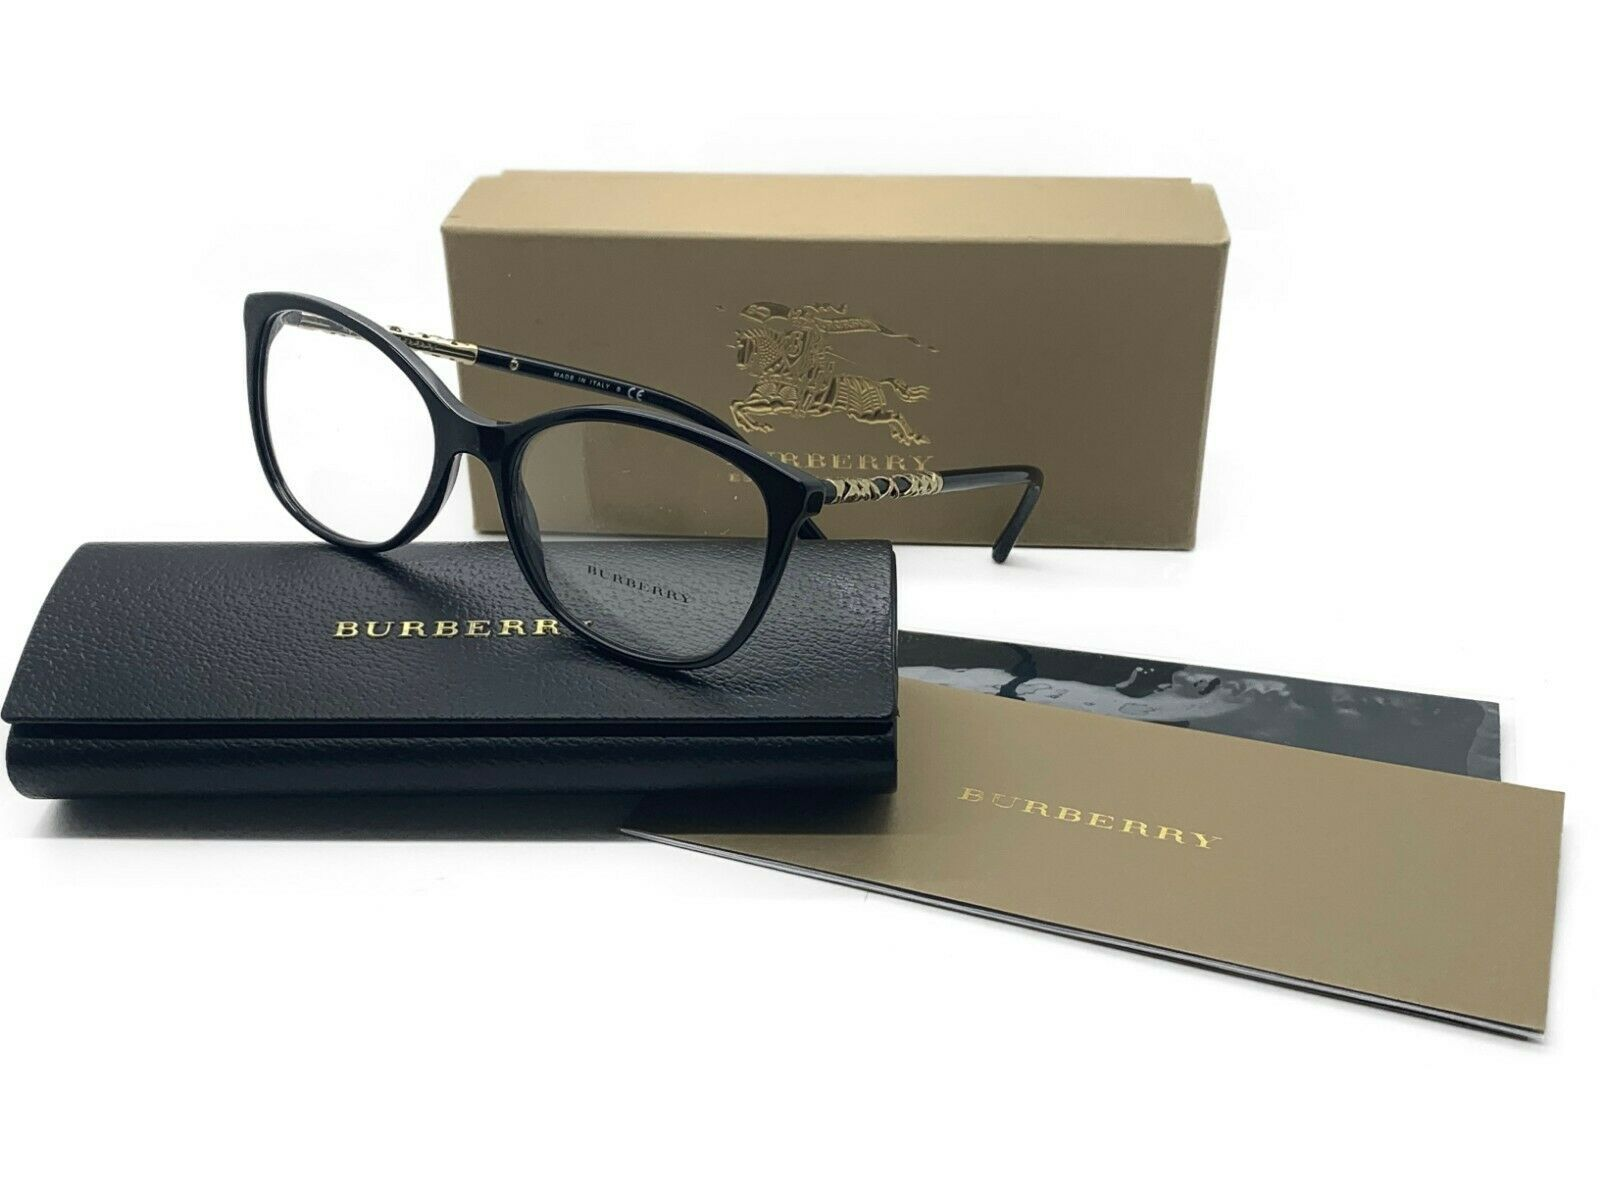 79faa493afa3 NEW BURBERRY B 2245 3001 BLACK WOMEN'S AUTHENTIC EYEGLASSES FRAME 54-17 -  $116.37